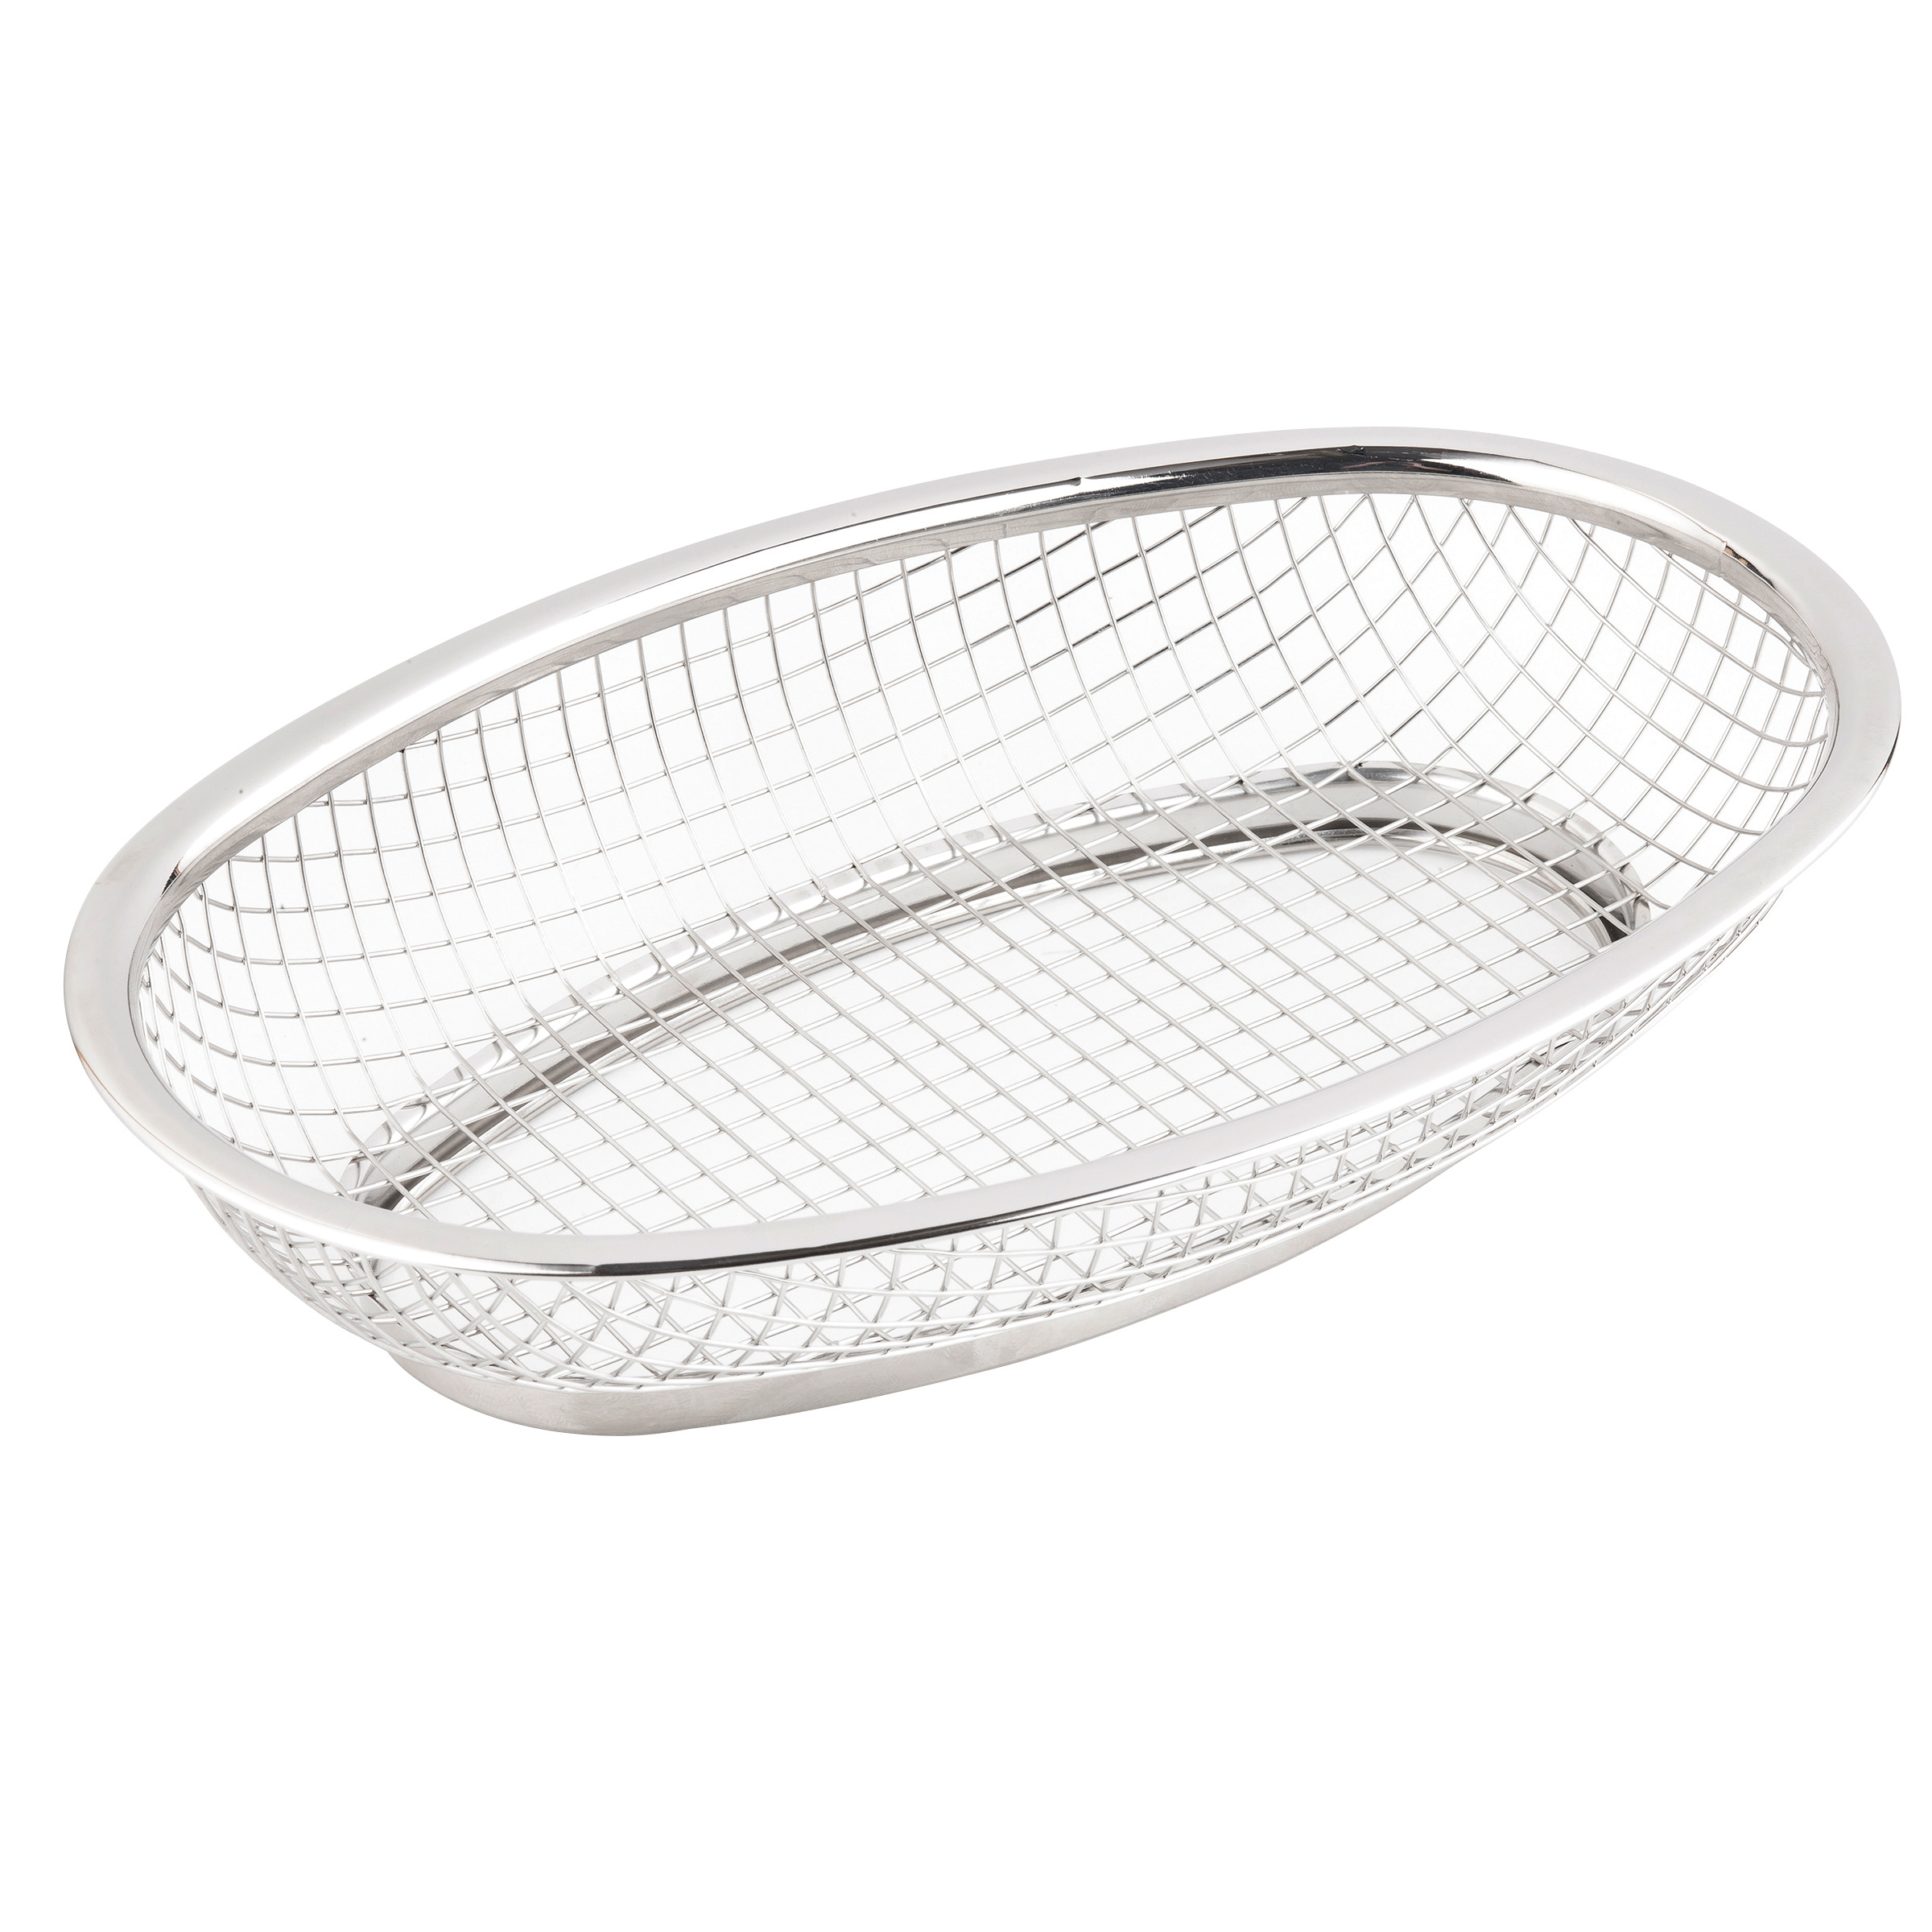 TableCraft Products 123471 basket, tabletop, metal